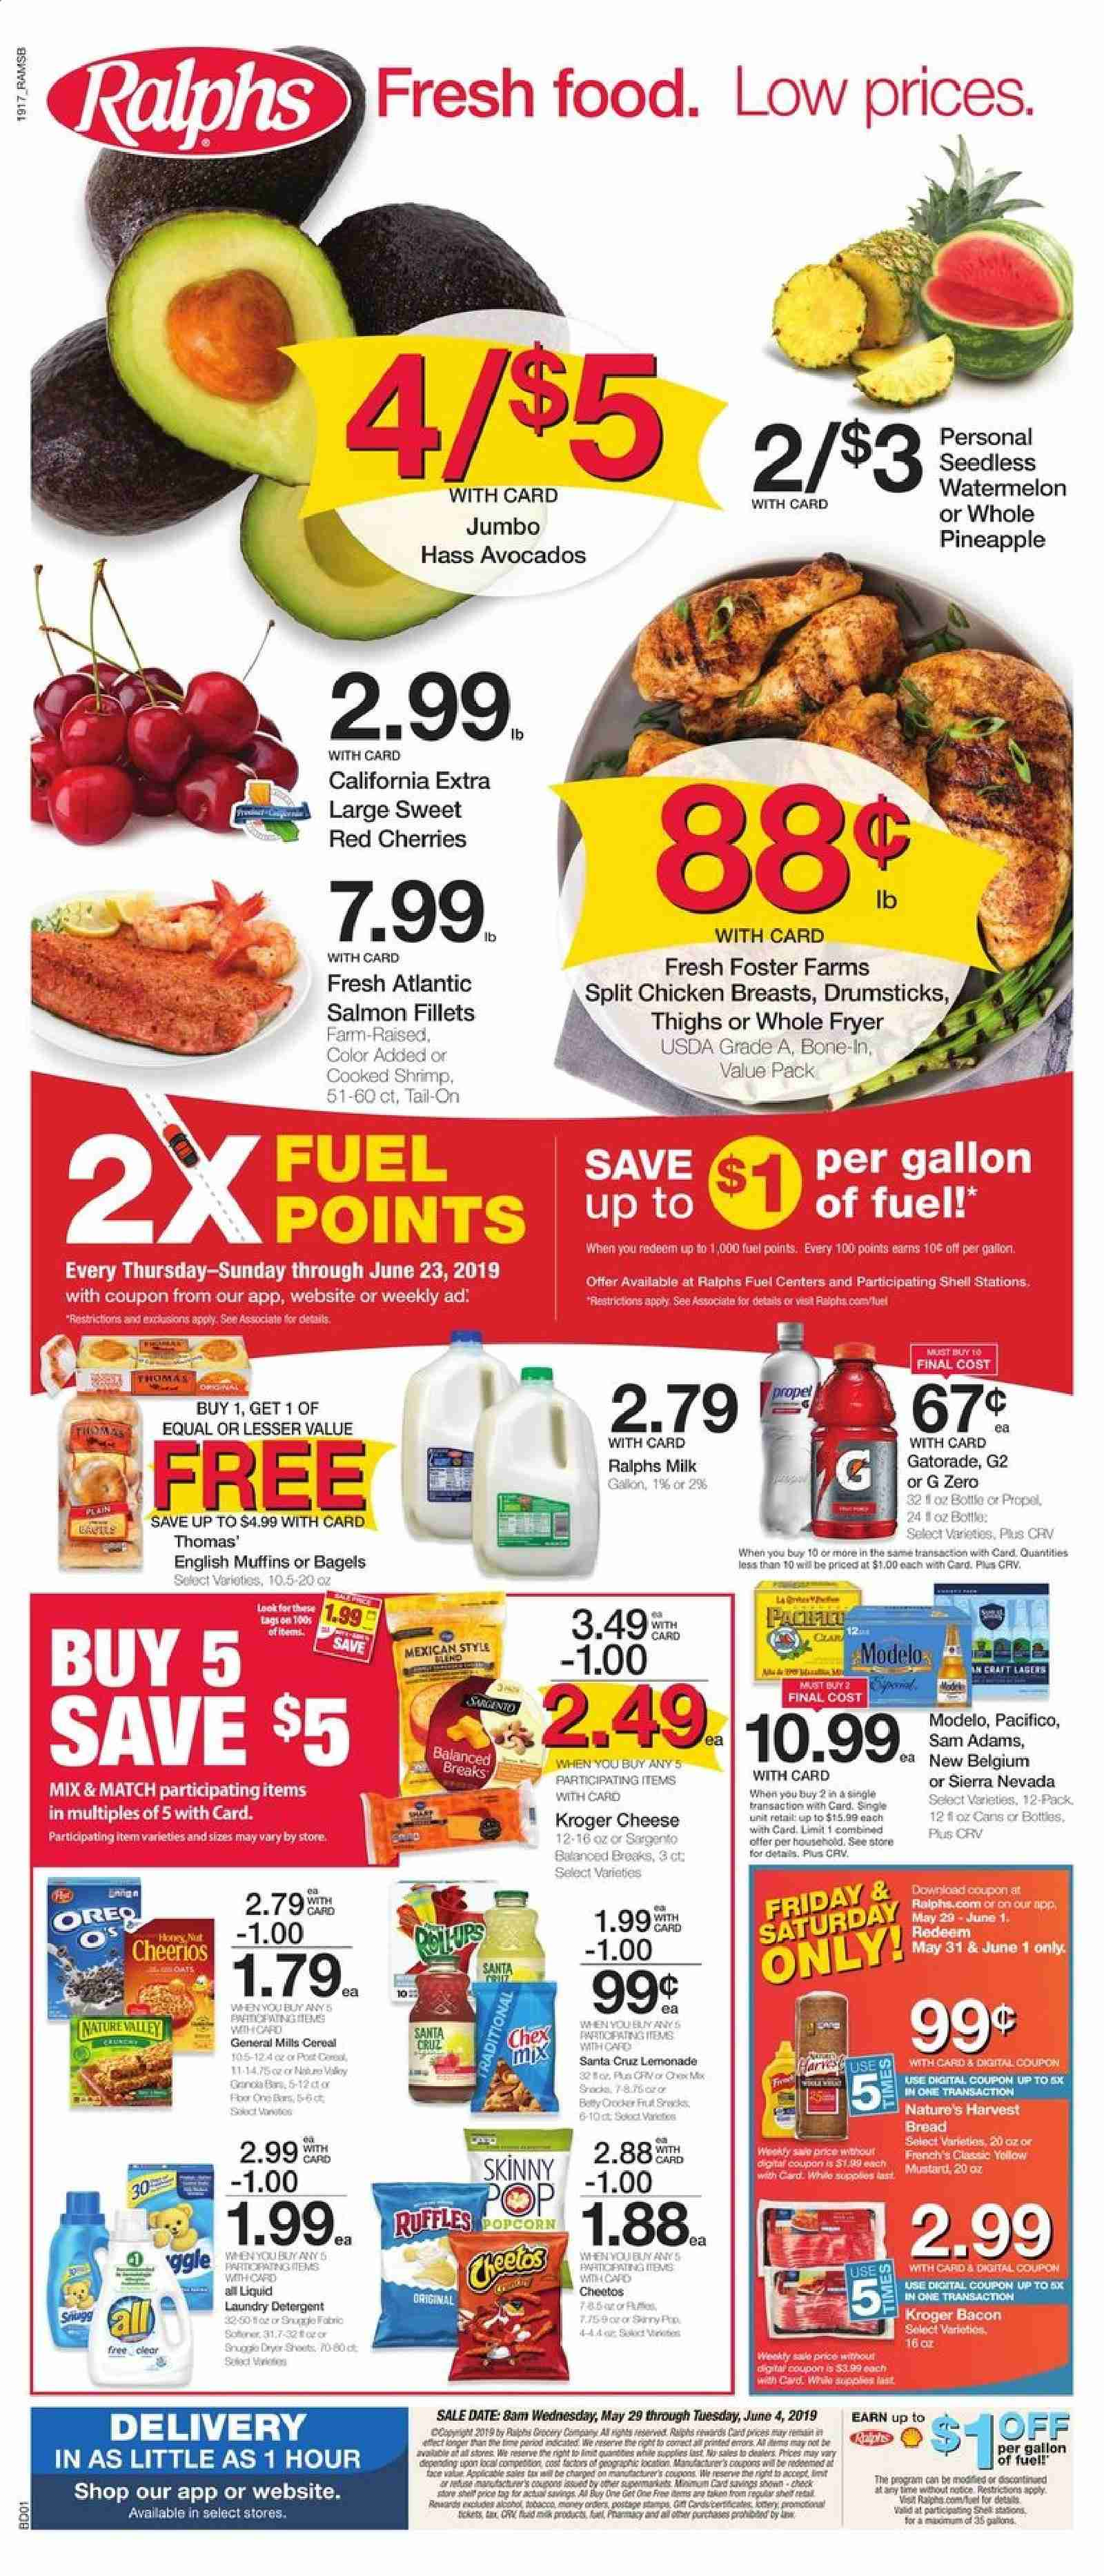 Ralphs Flyer  - 05.29.2019 - 06.04.2019. Page 1.